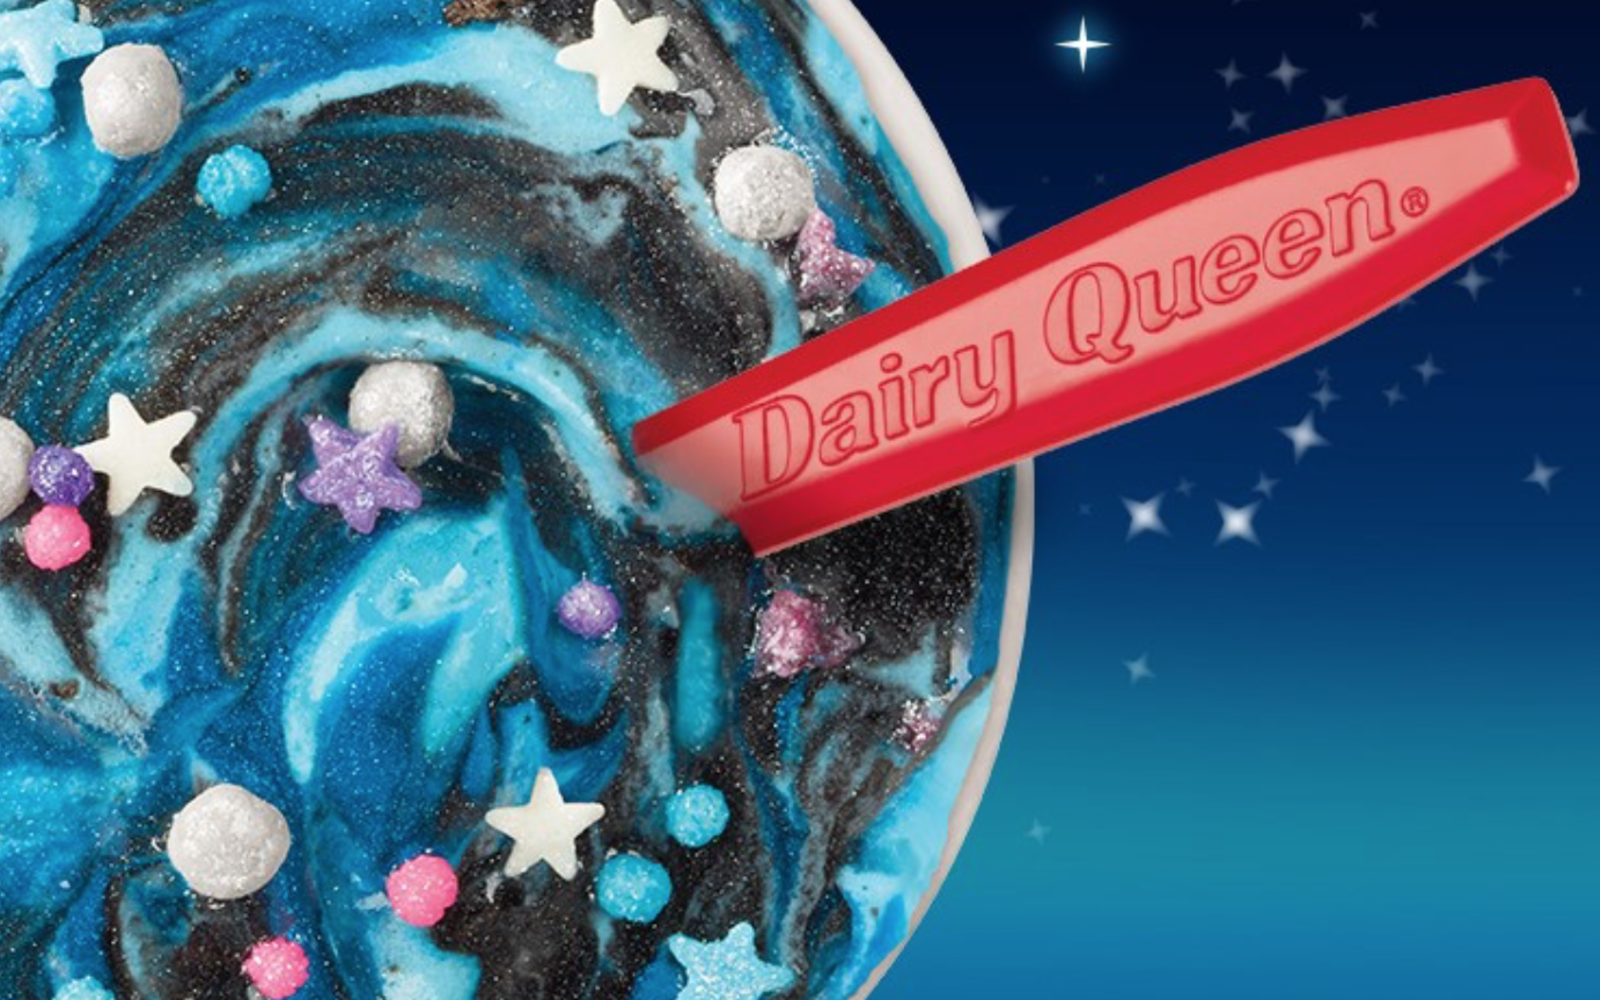 Dairy Queen Just Released a New Blizzard to Celebrate the 50th Anniversary of the Moon Landing